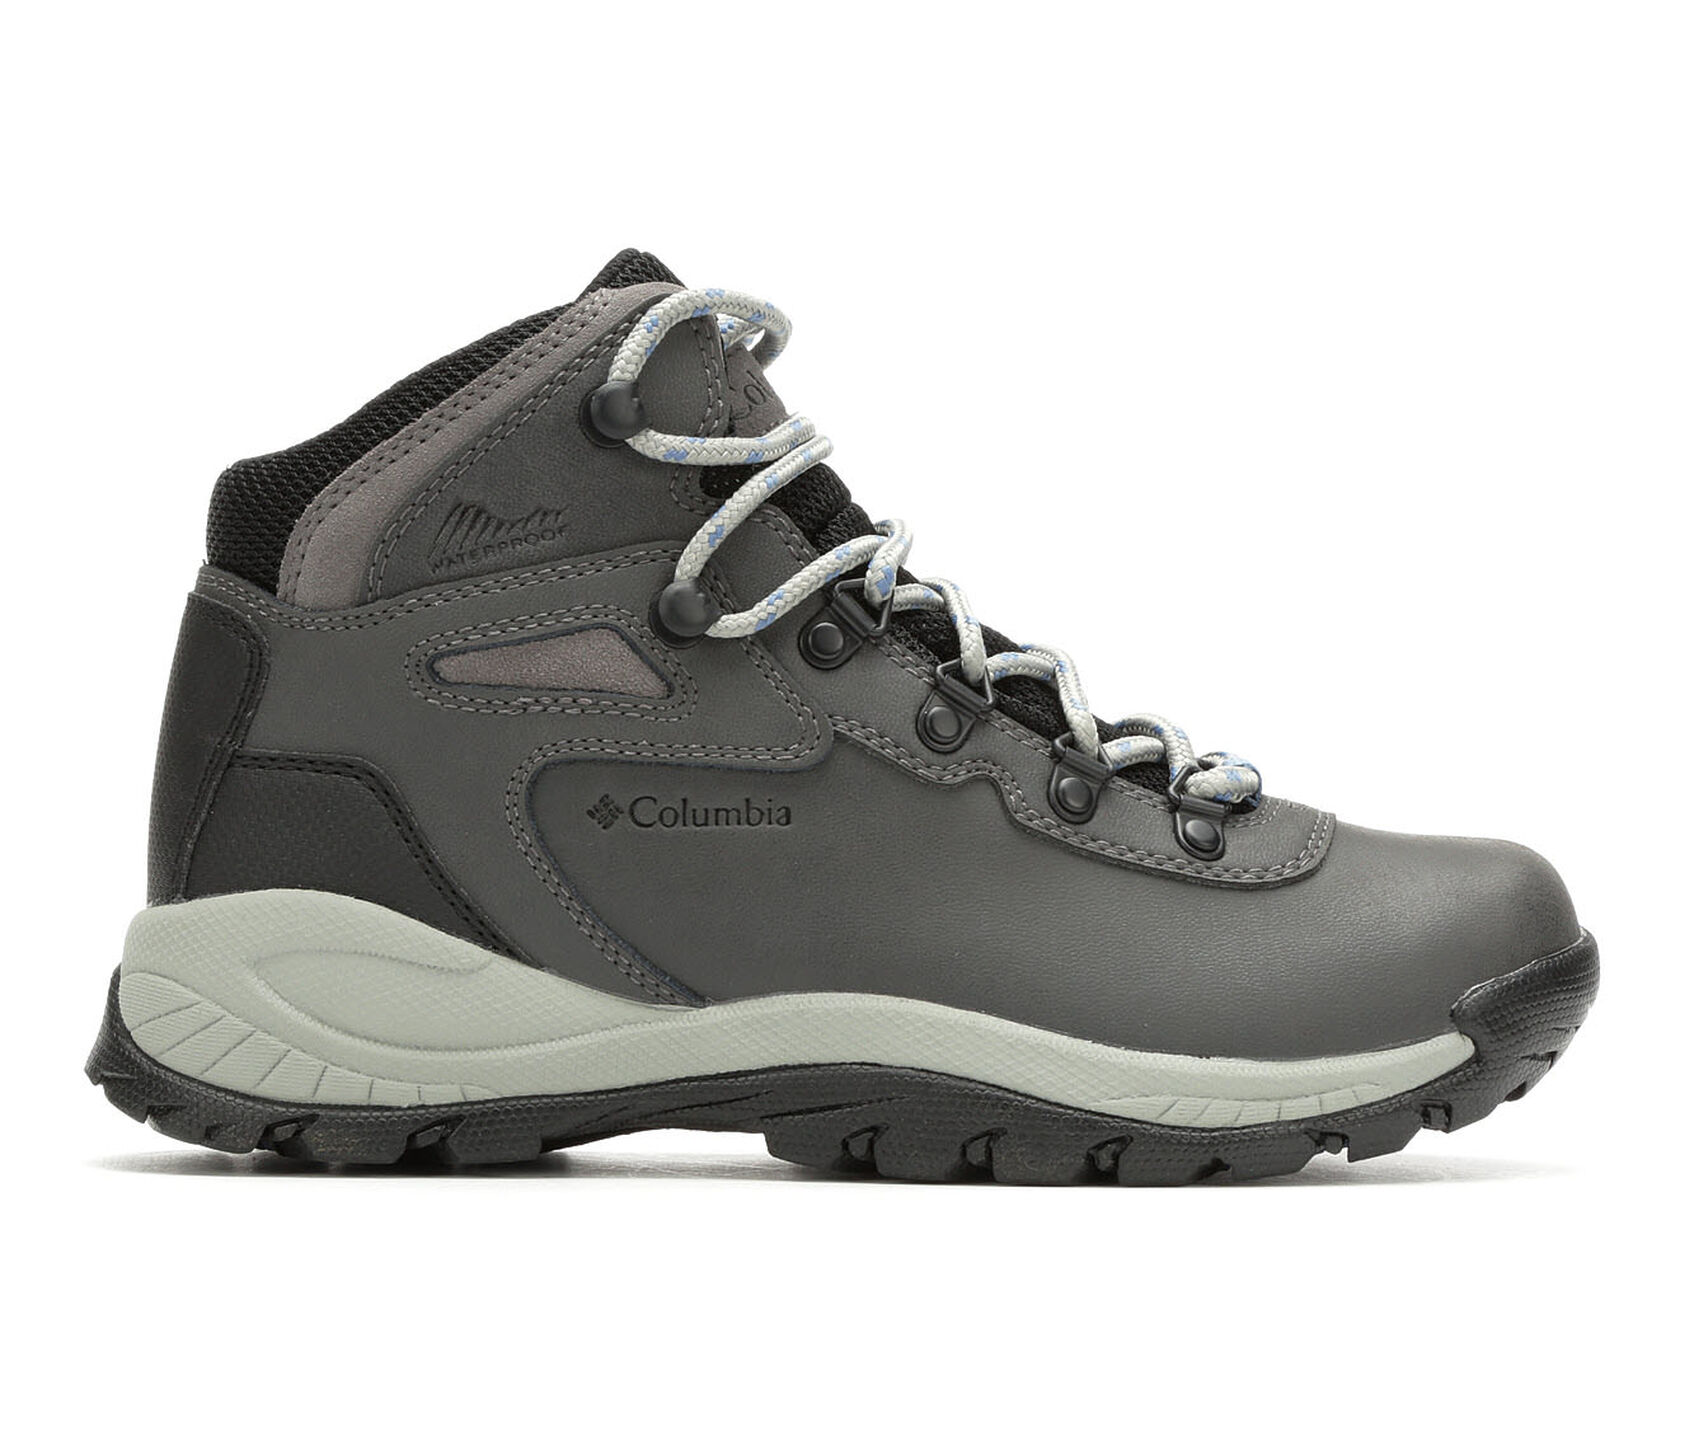 8bab8c629fb Women's Columbia Newton Ridge Hiking Boots